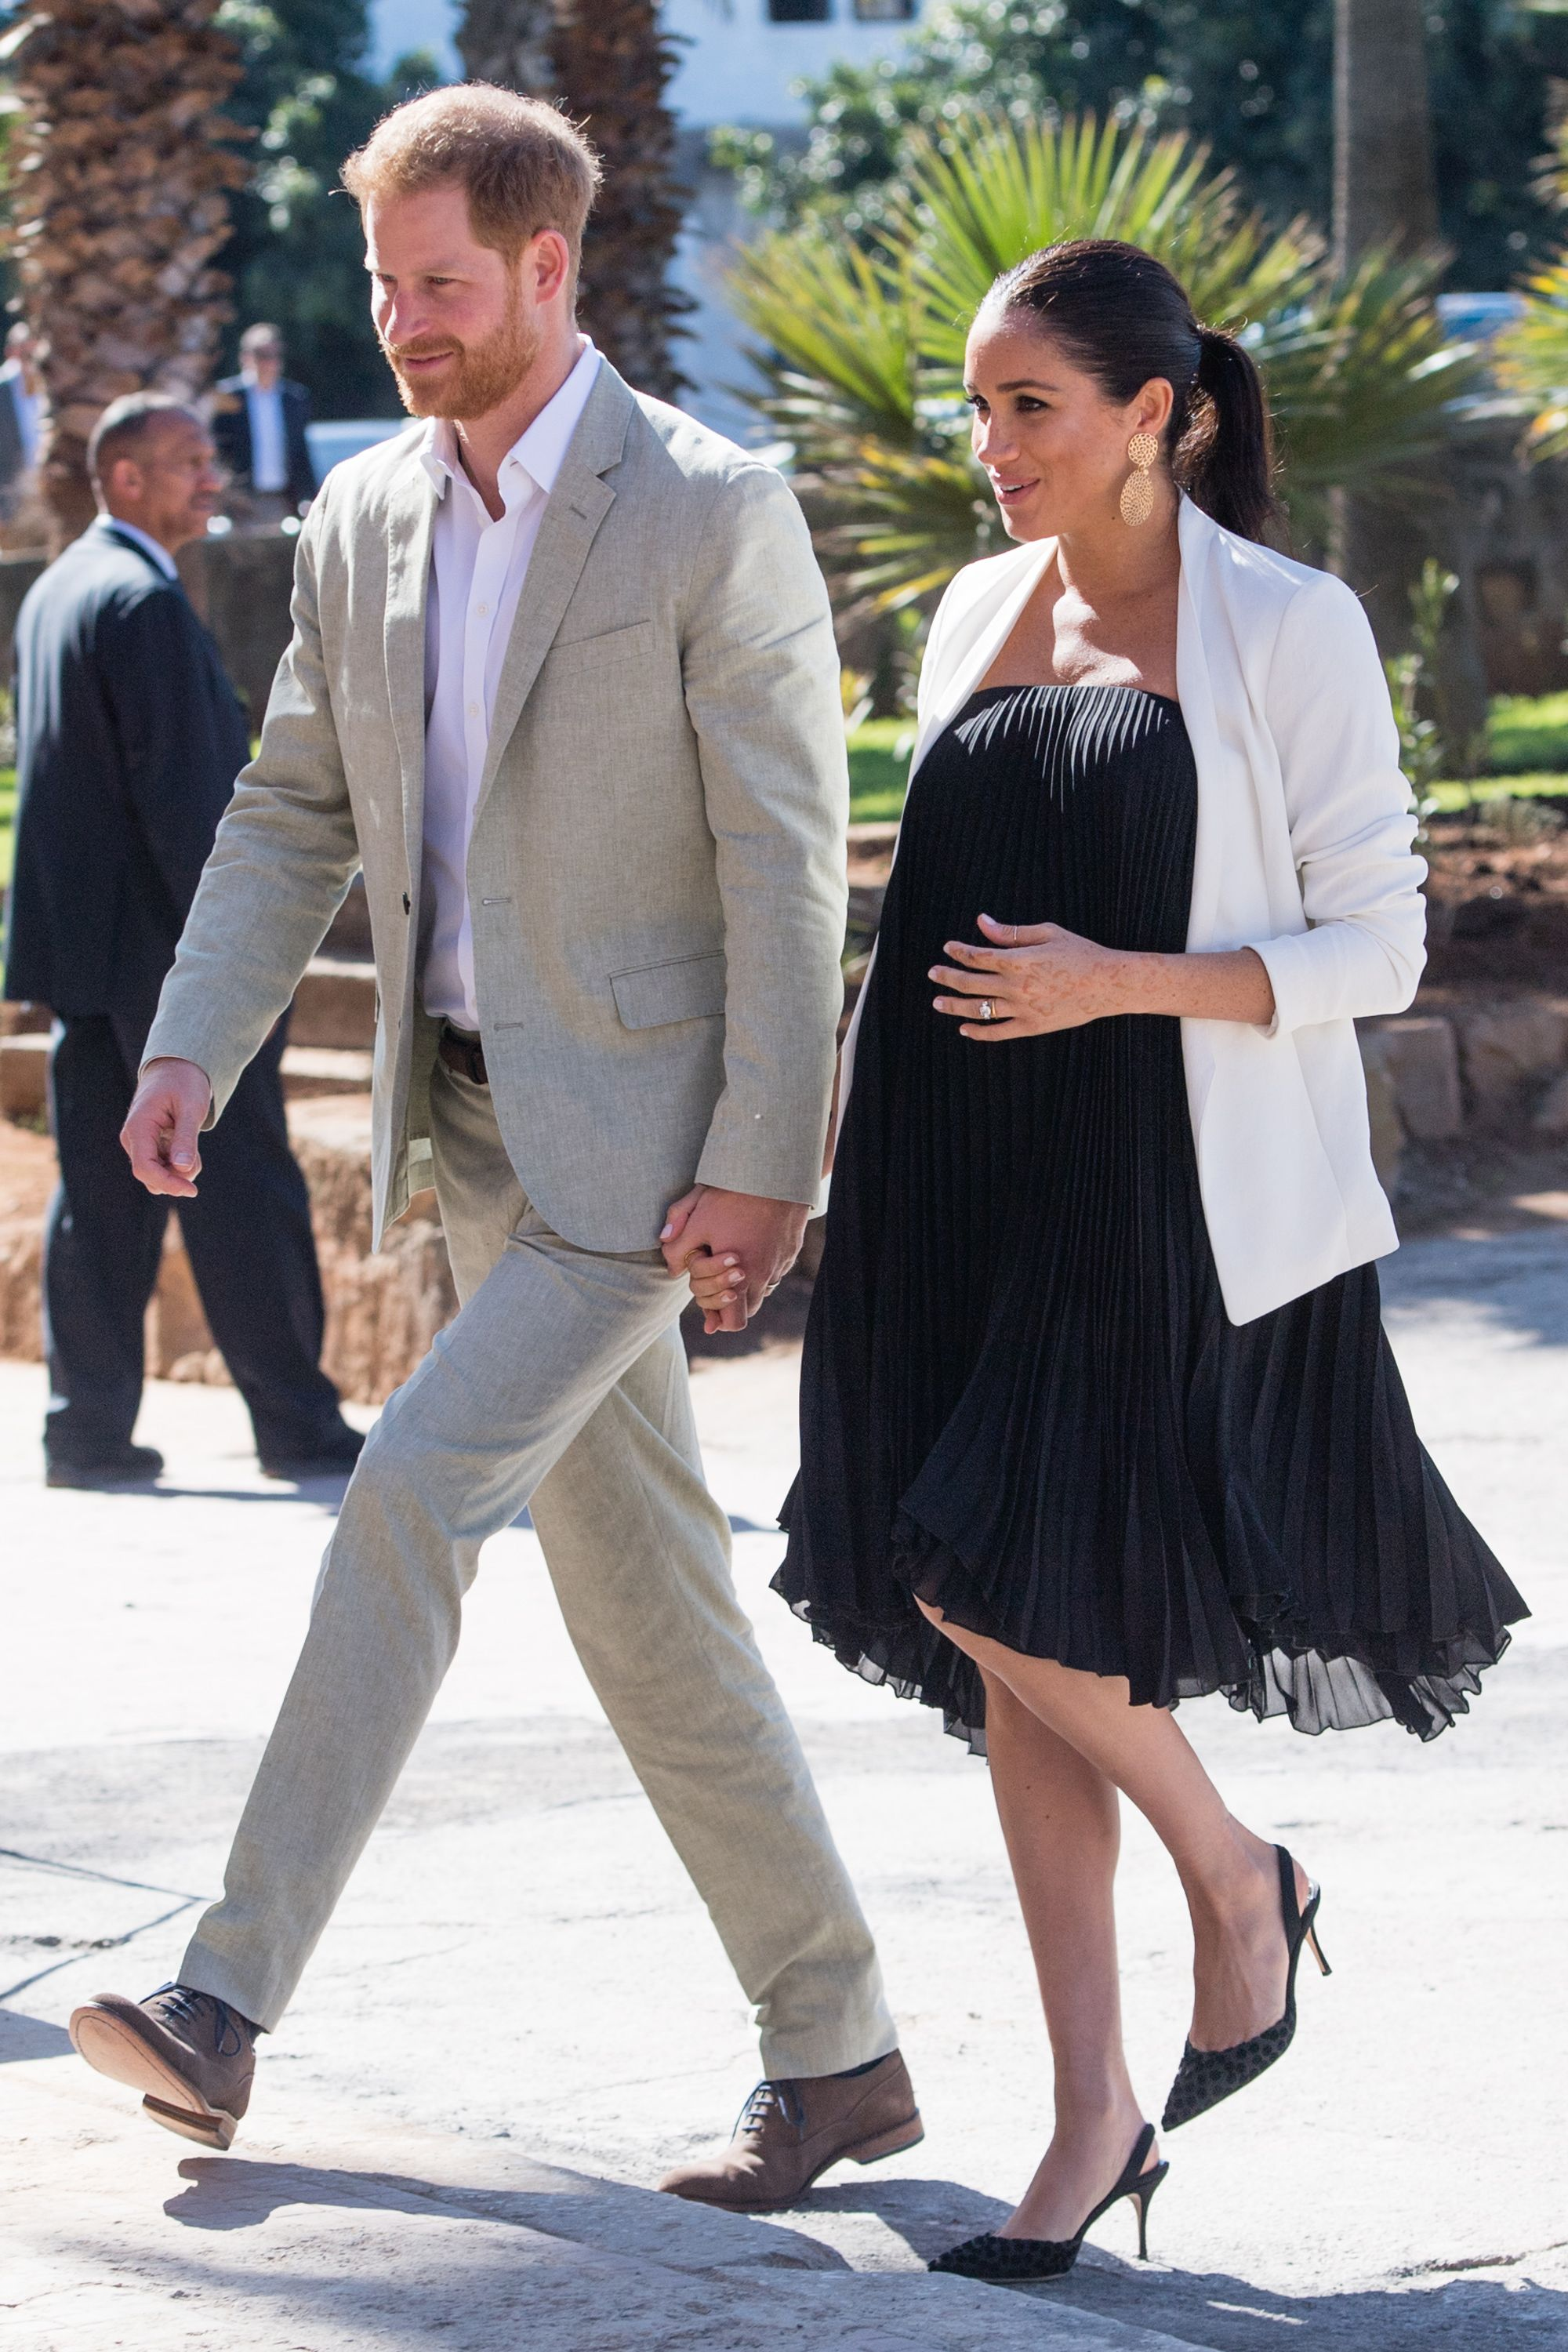 fcbffbc2a88 Meghan Markle Maternity Style - Meghan Markle s Best Pregnancy Outfits and  Fashion